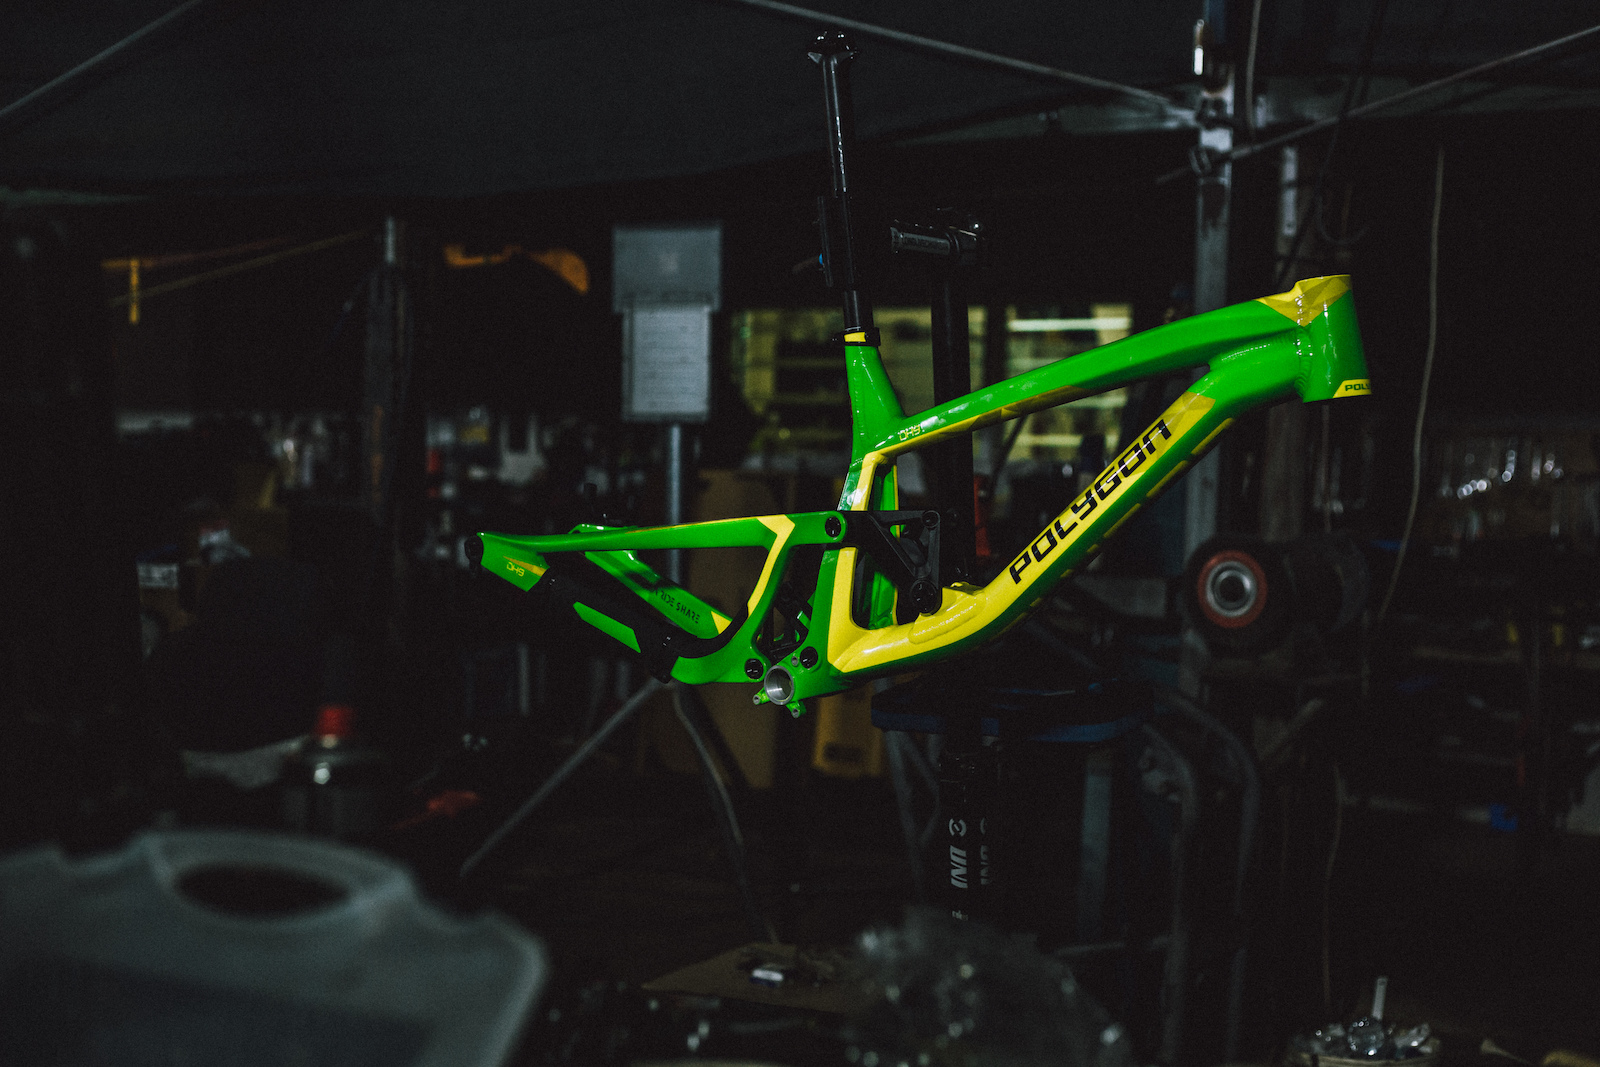 Tracey Hannah s Polygon DH9 done up in Aussie colors. But will she race this bike or the prototype seen at Crankworx and Val di Sole